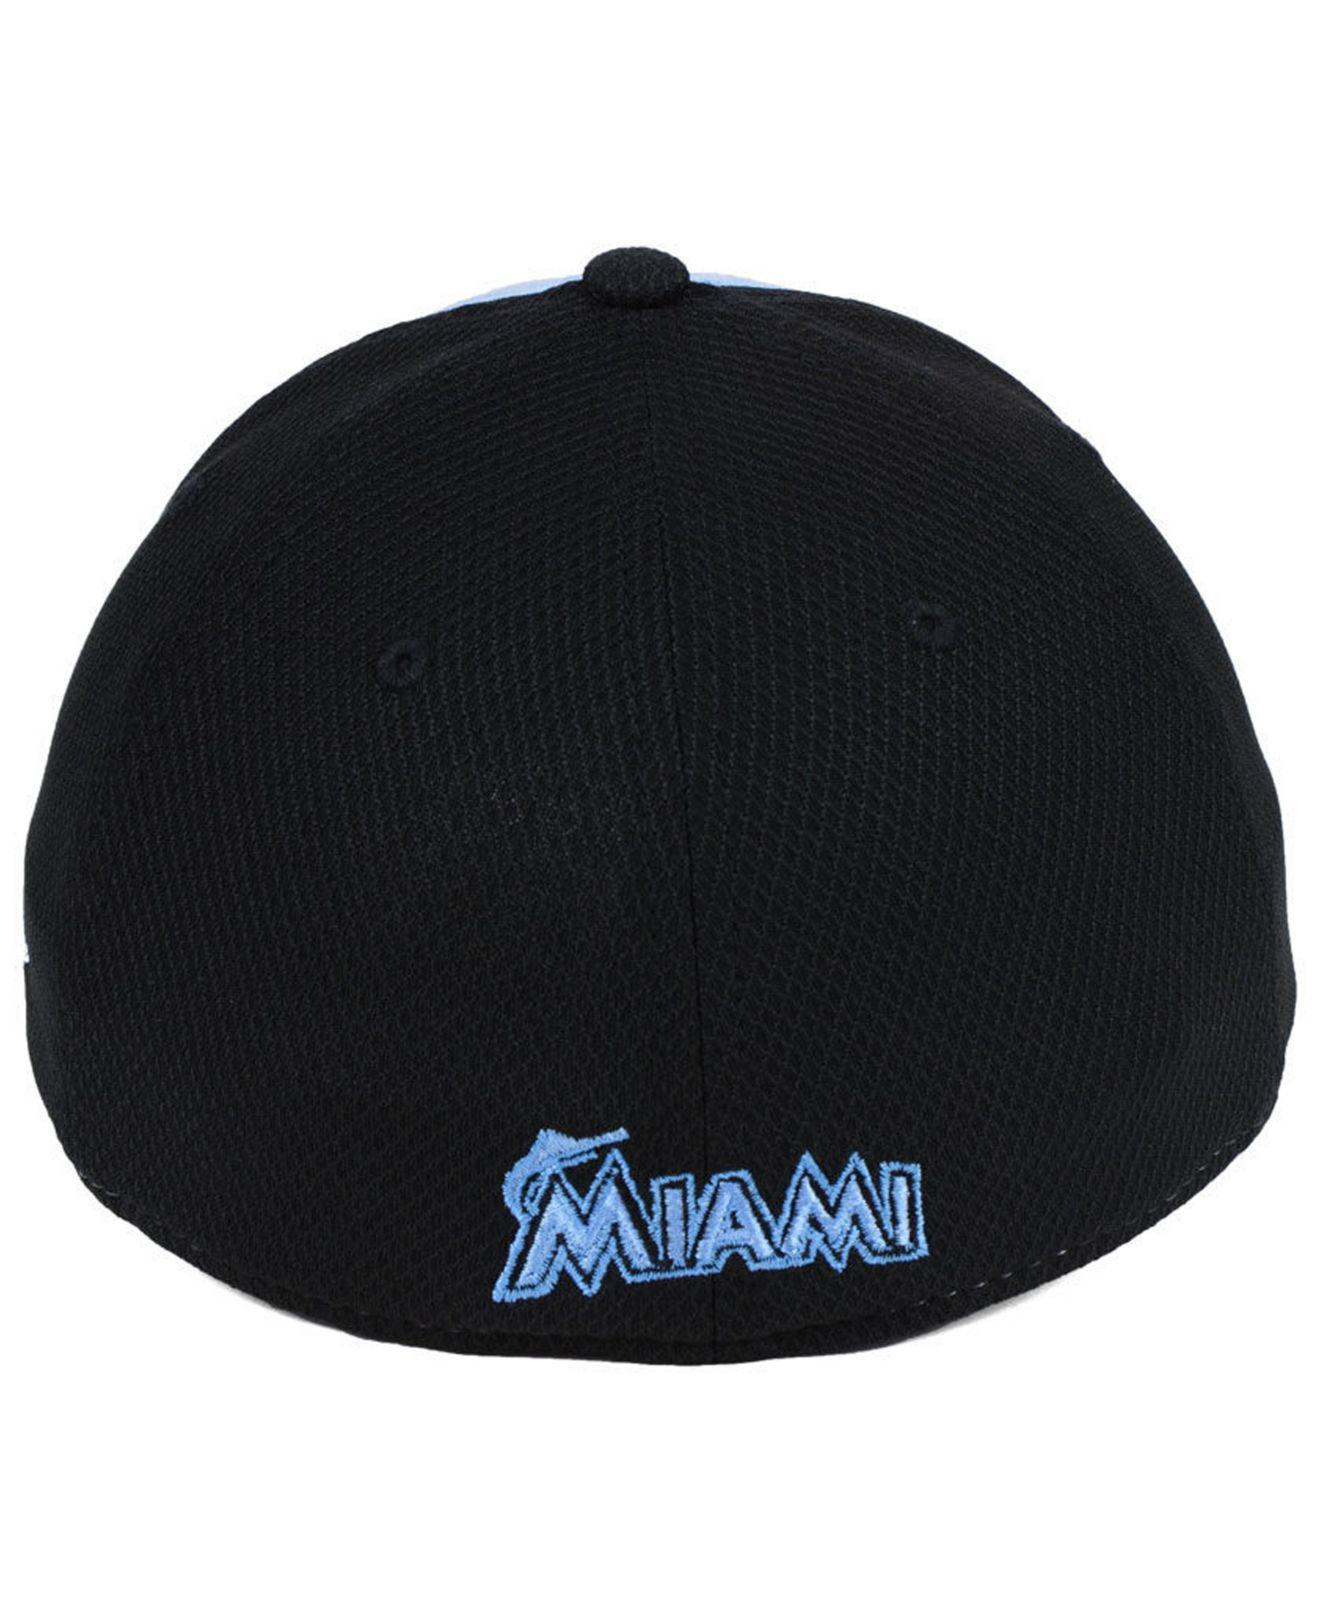 new style de697 6d7f4 clearance miami marlins fathers day hat bb0d3 77d5a